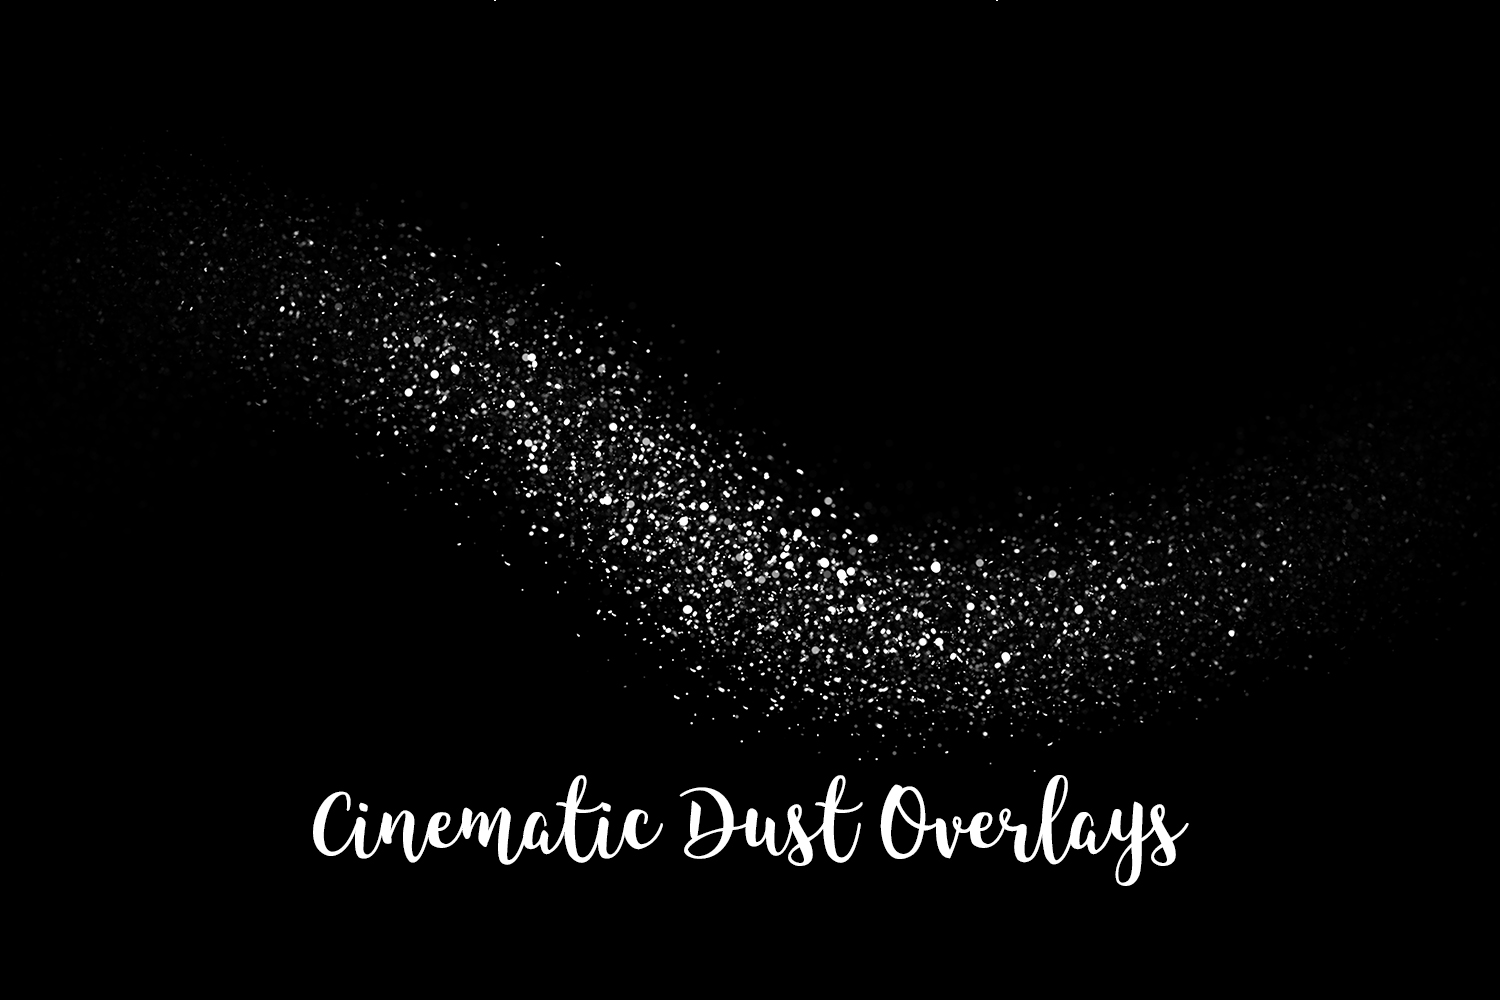 Cinematic Dust Photo Overlays, Bokeh Light Effects example image 5